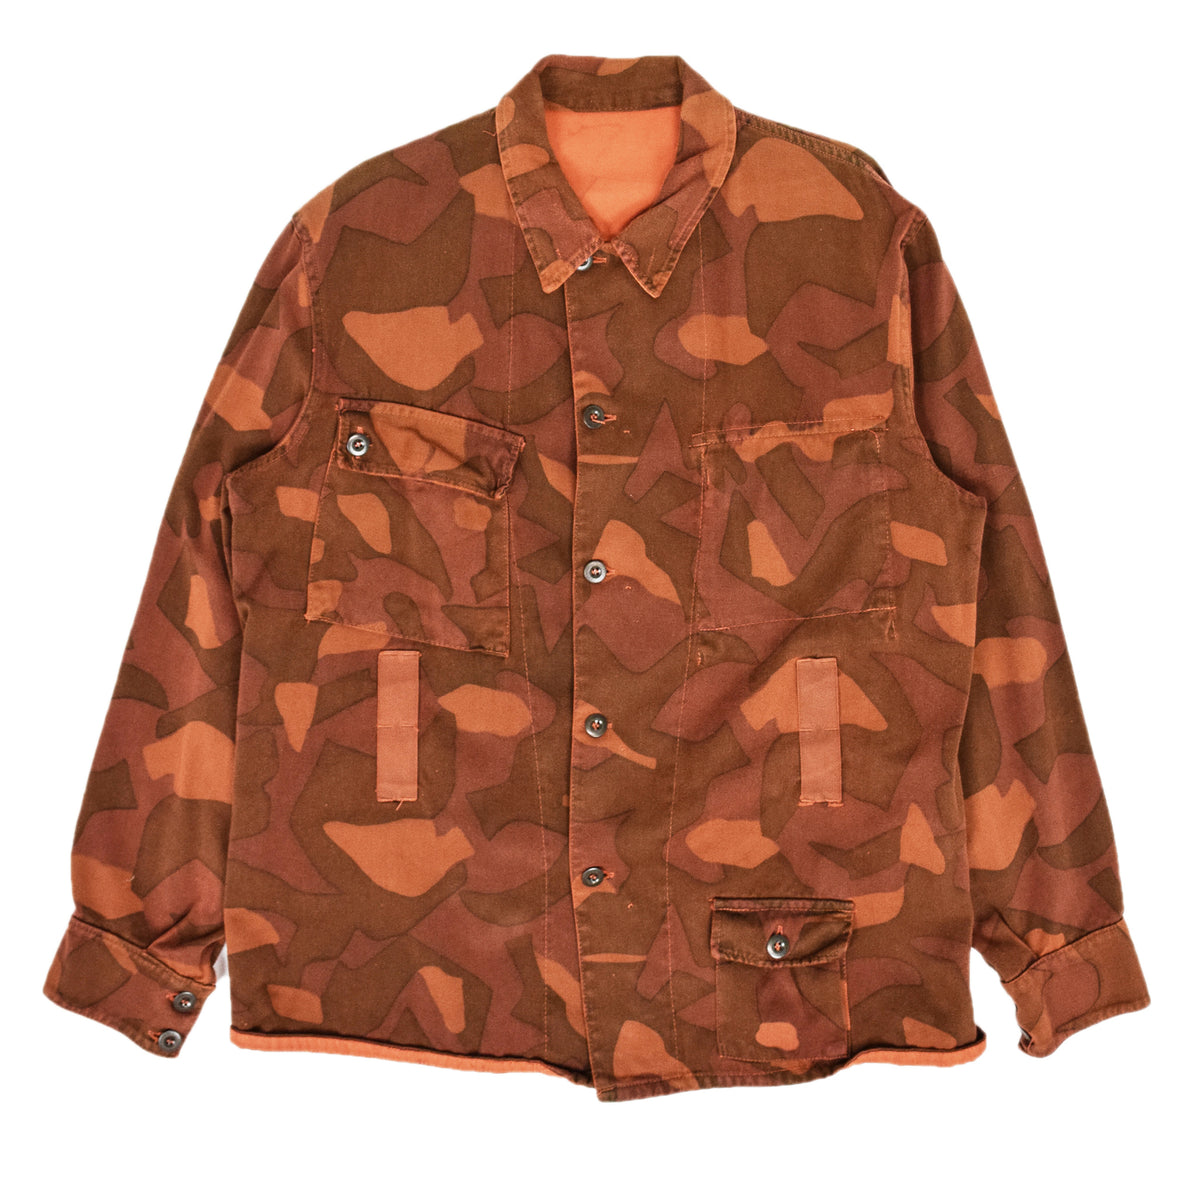 Vintage 60s Military Finnish Army Orange Overdyed Camo Mountain Jacket L / XL FRONT